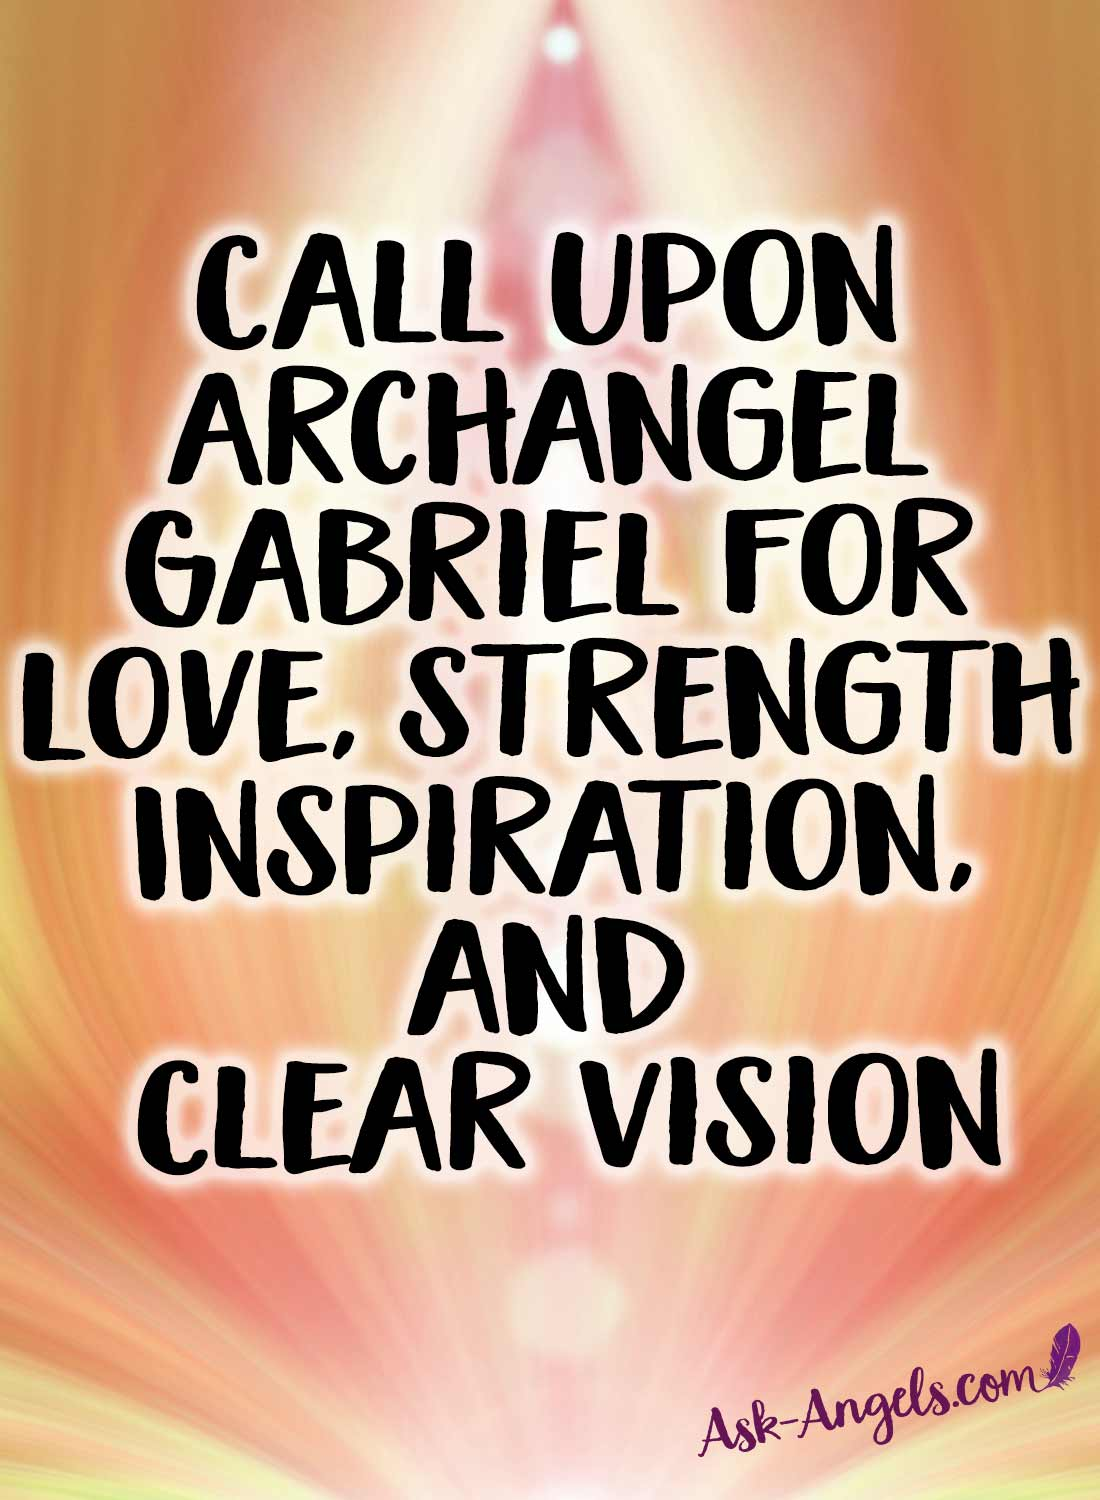 Call upon Gabriel for Love, strength Inspiration, and Clear Vision